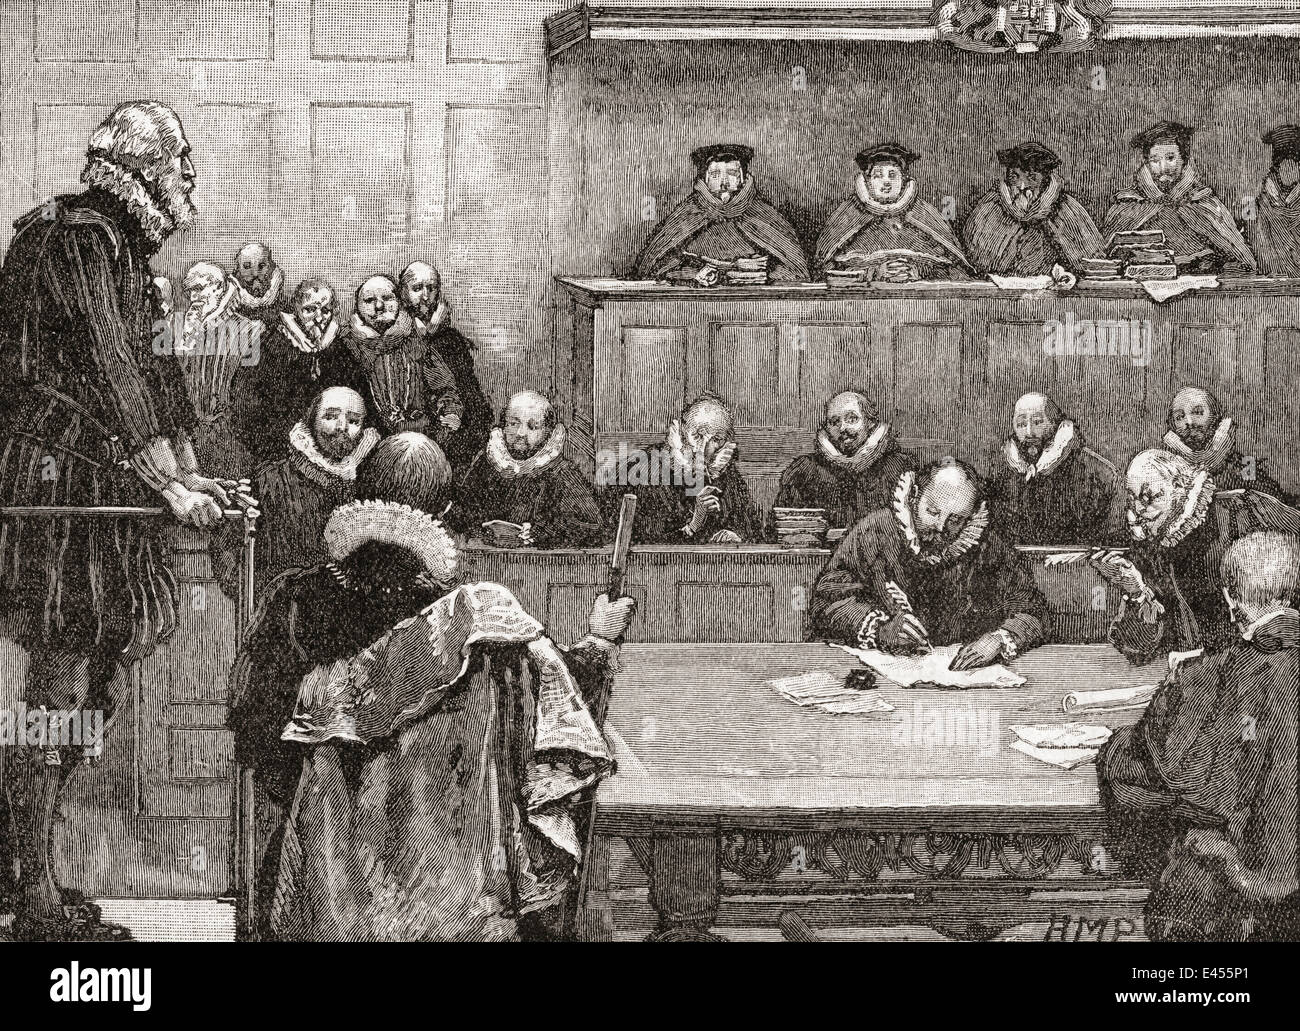 Sir Walter Raleigh before the judges in 1618. - Stock Image